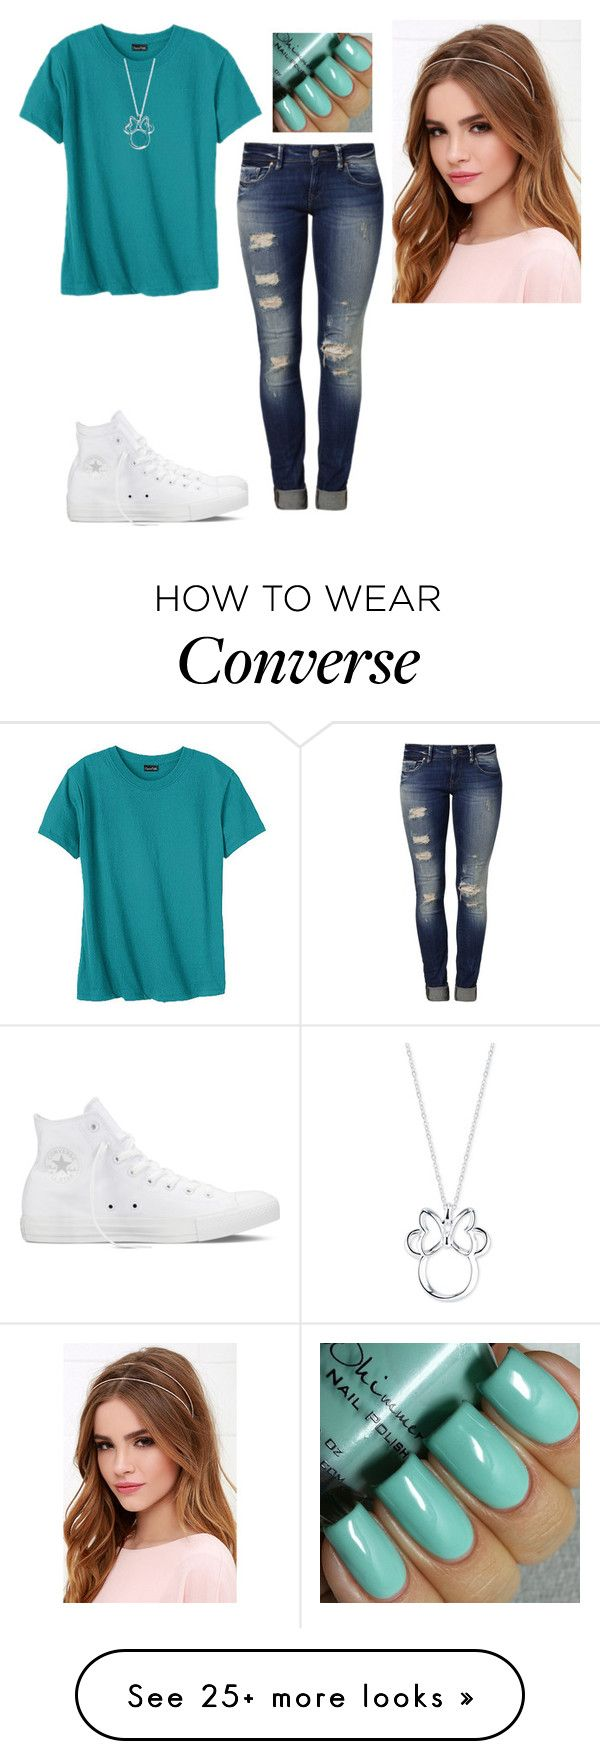 """Untitled #1321"" by hannahmcpherson12 on Polyvore featuring Hanes, Mavi, Converse, Lulu*s, Disney, women's clothing, women, female, woman and misses"